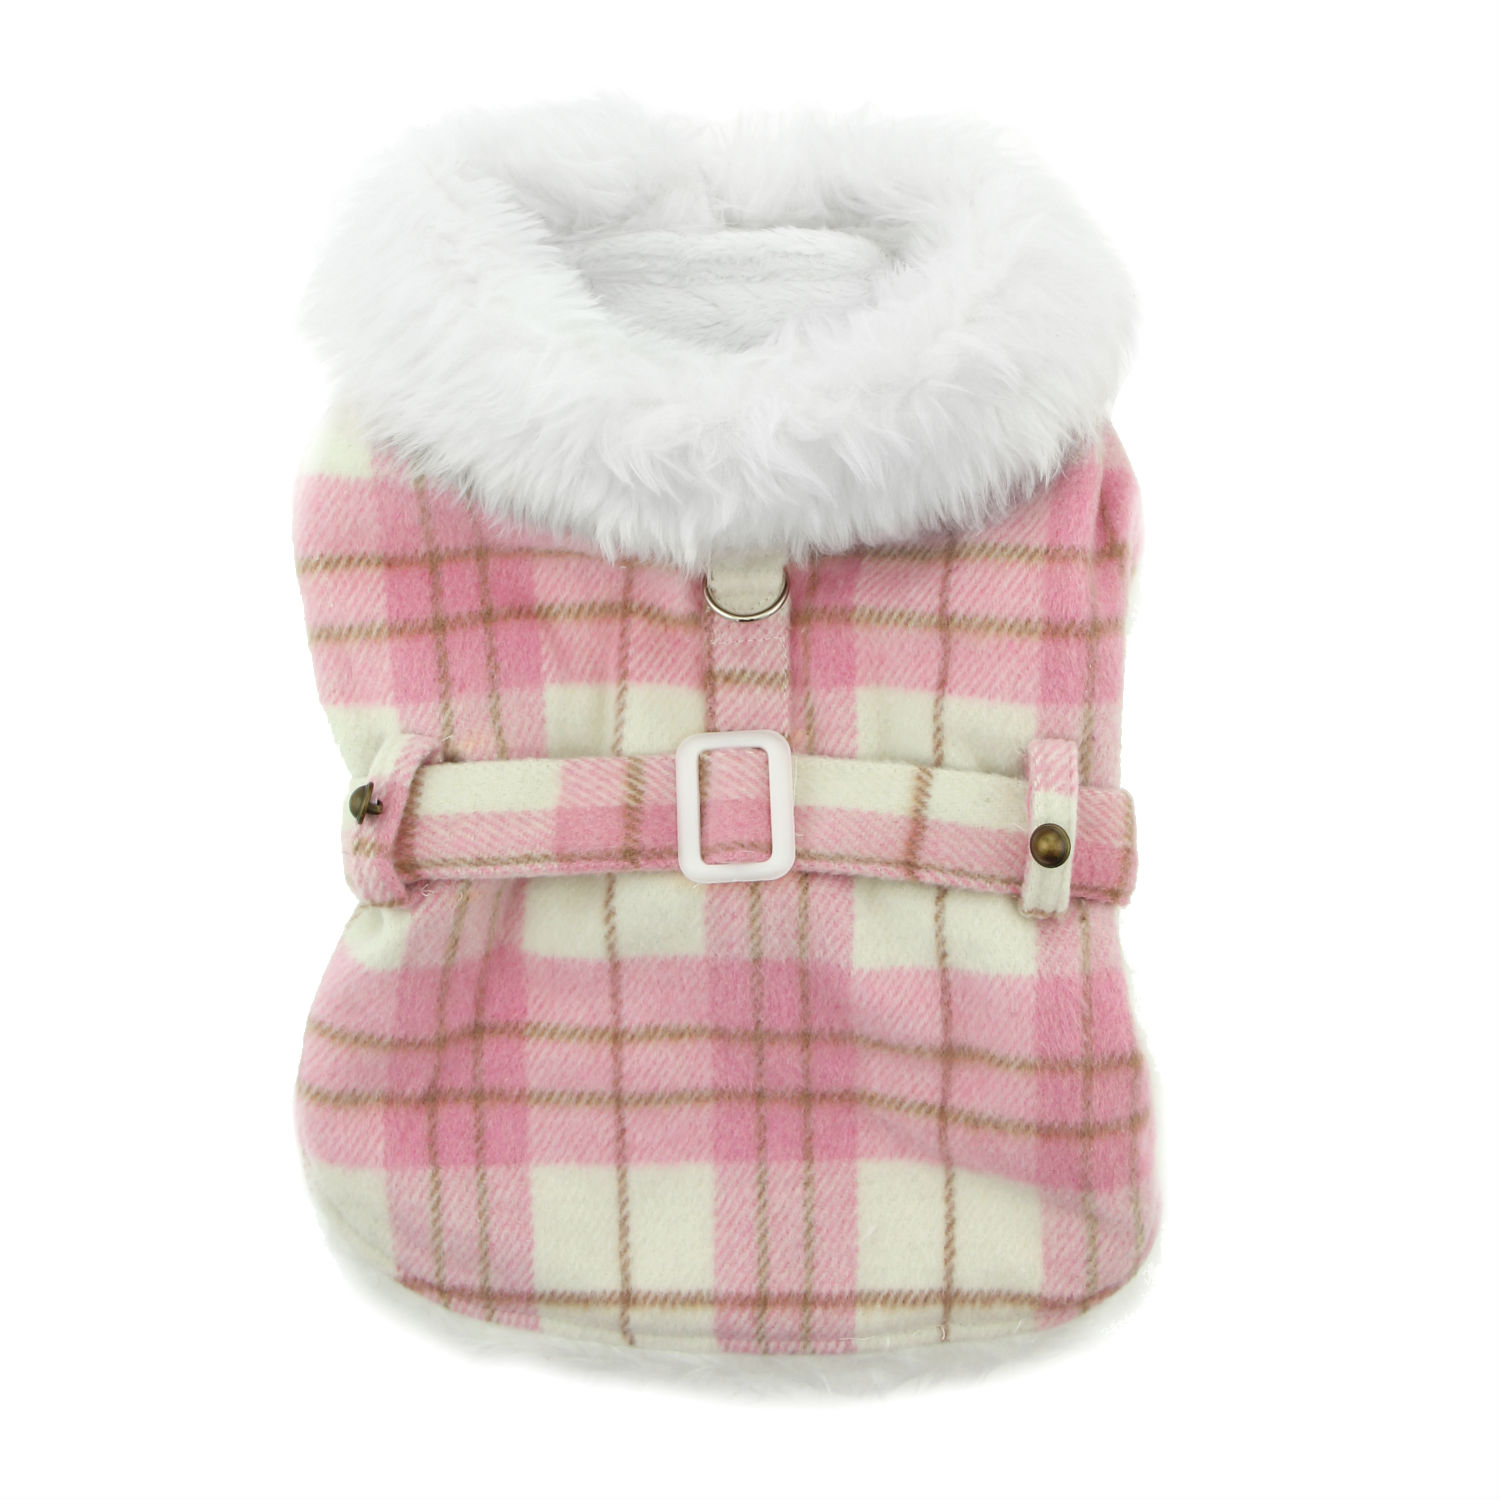 Doggie Design Designer Dog Coat Harness with Matching Leash, Pink Plaid with White Fur, XX-Large